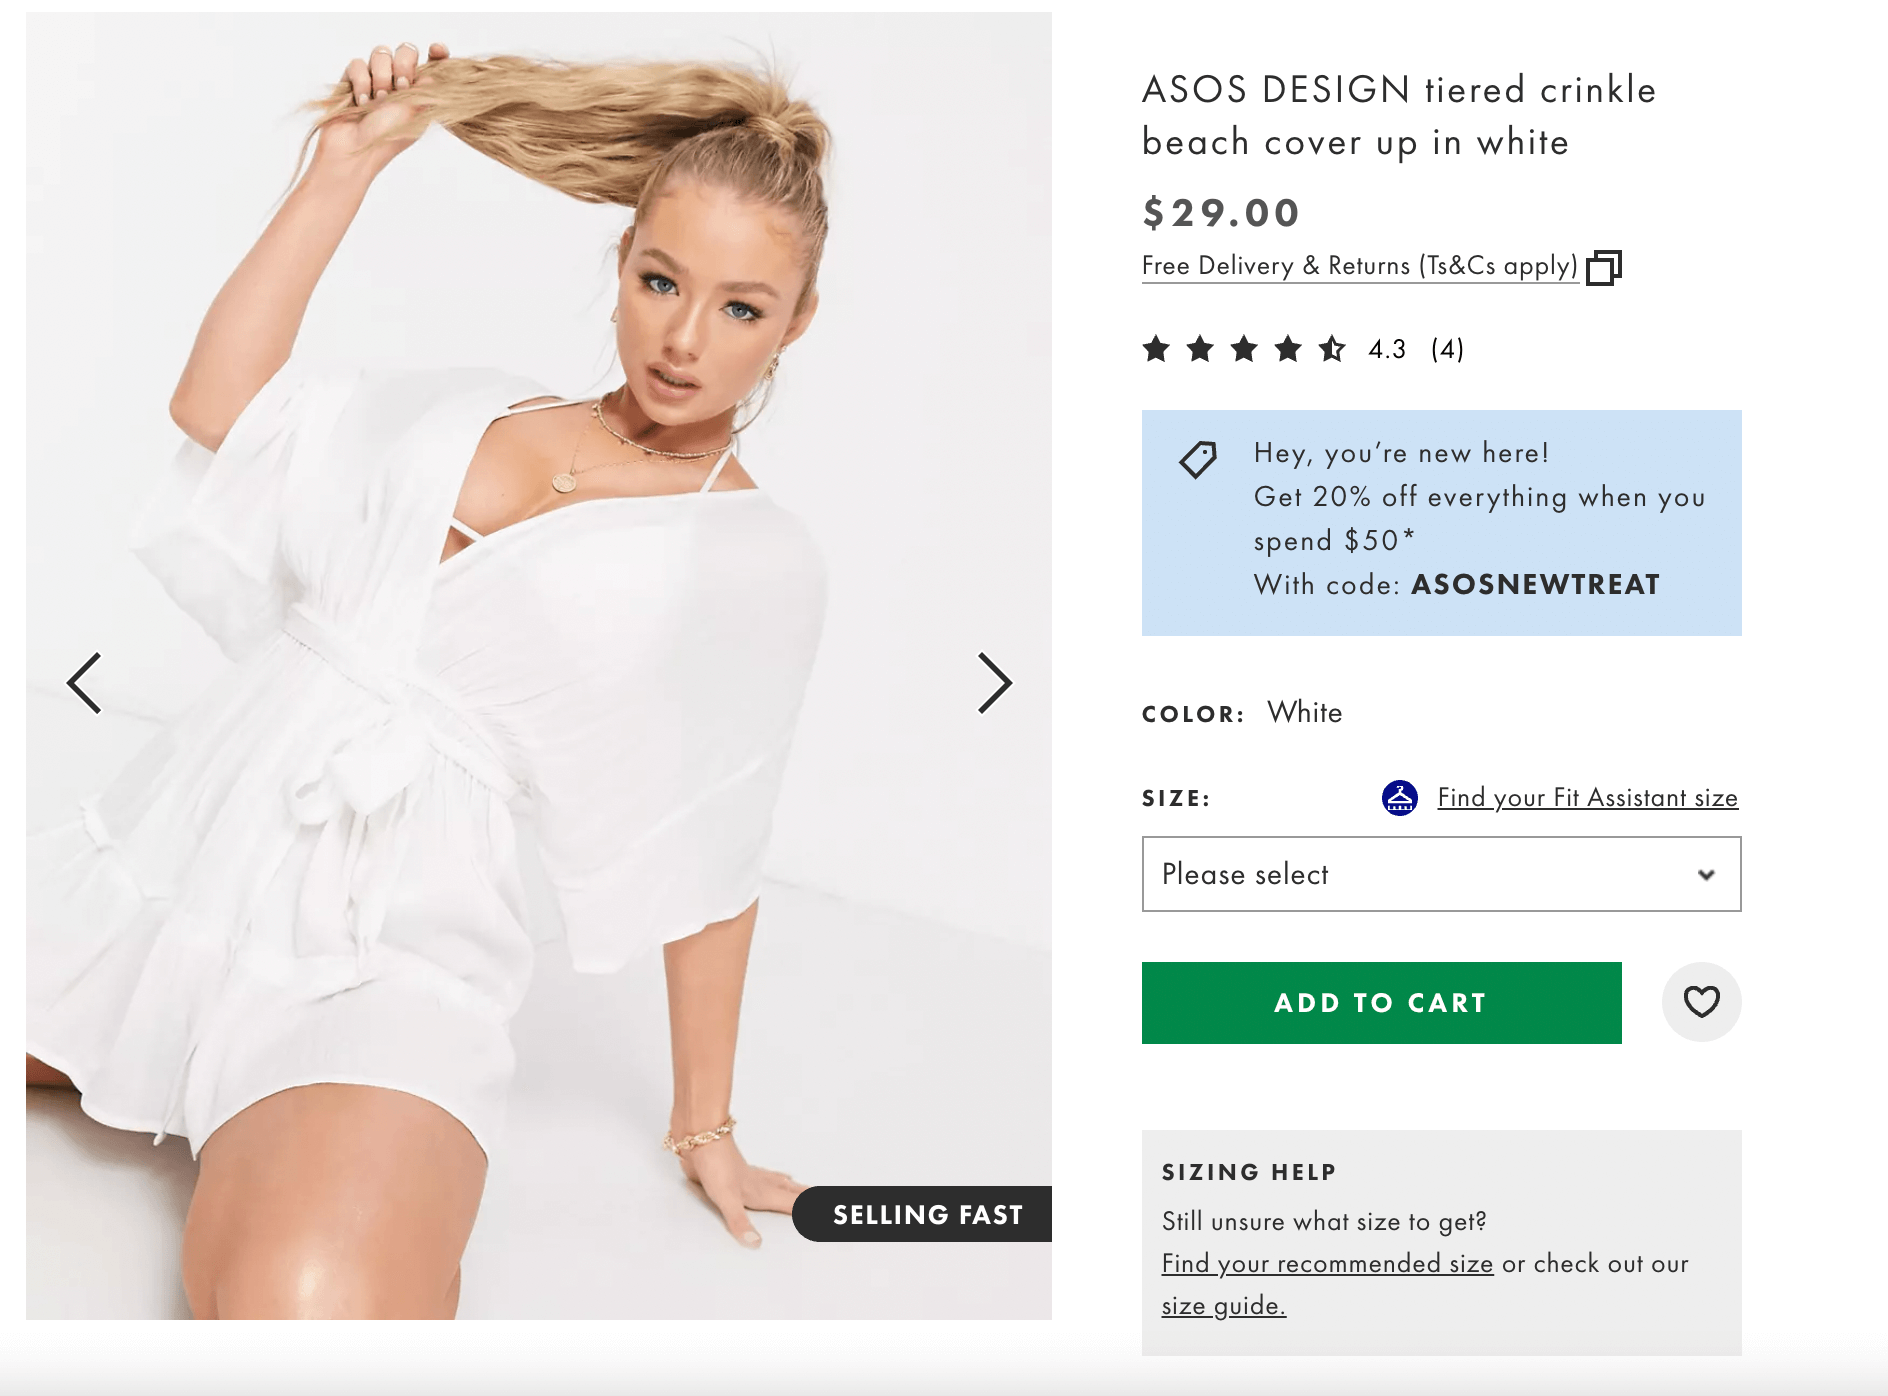 ASOS design tiered crinkle beach cover-up